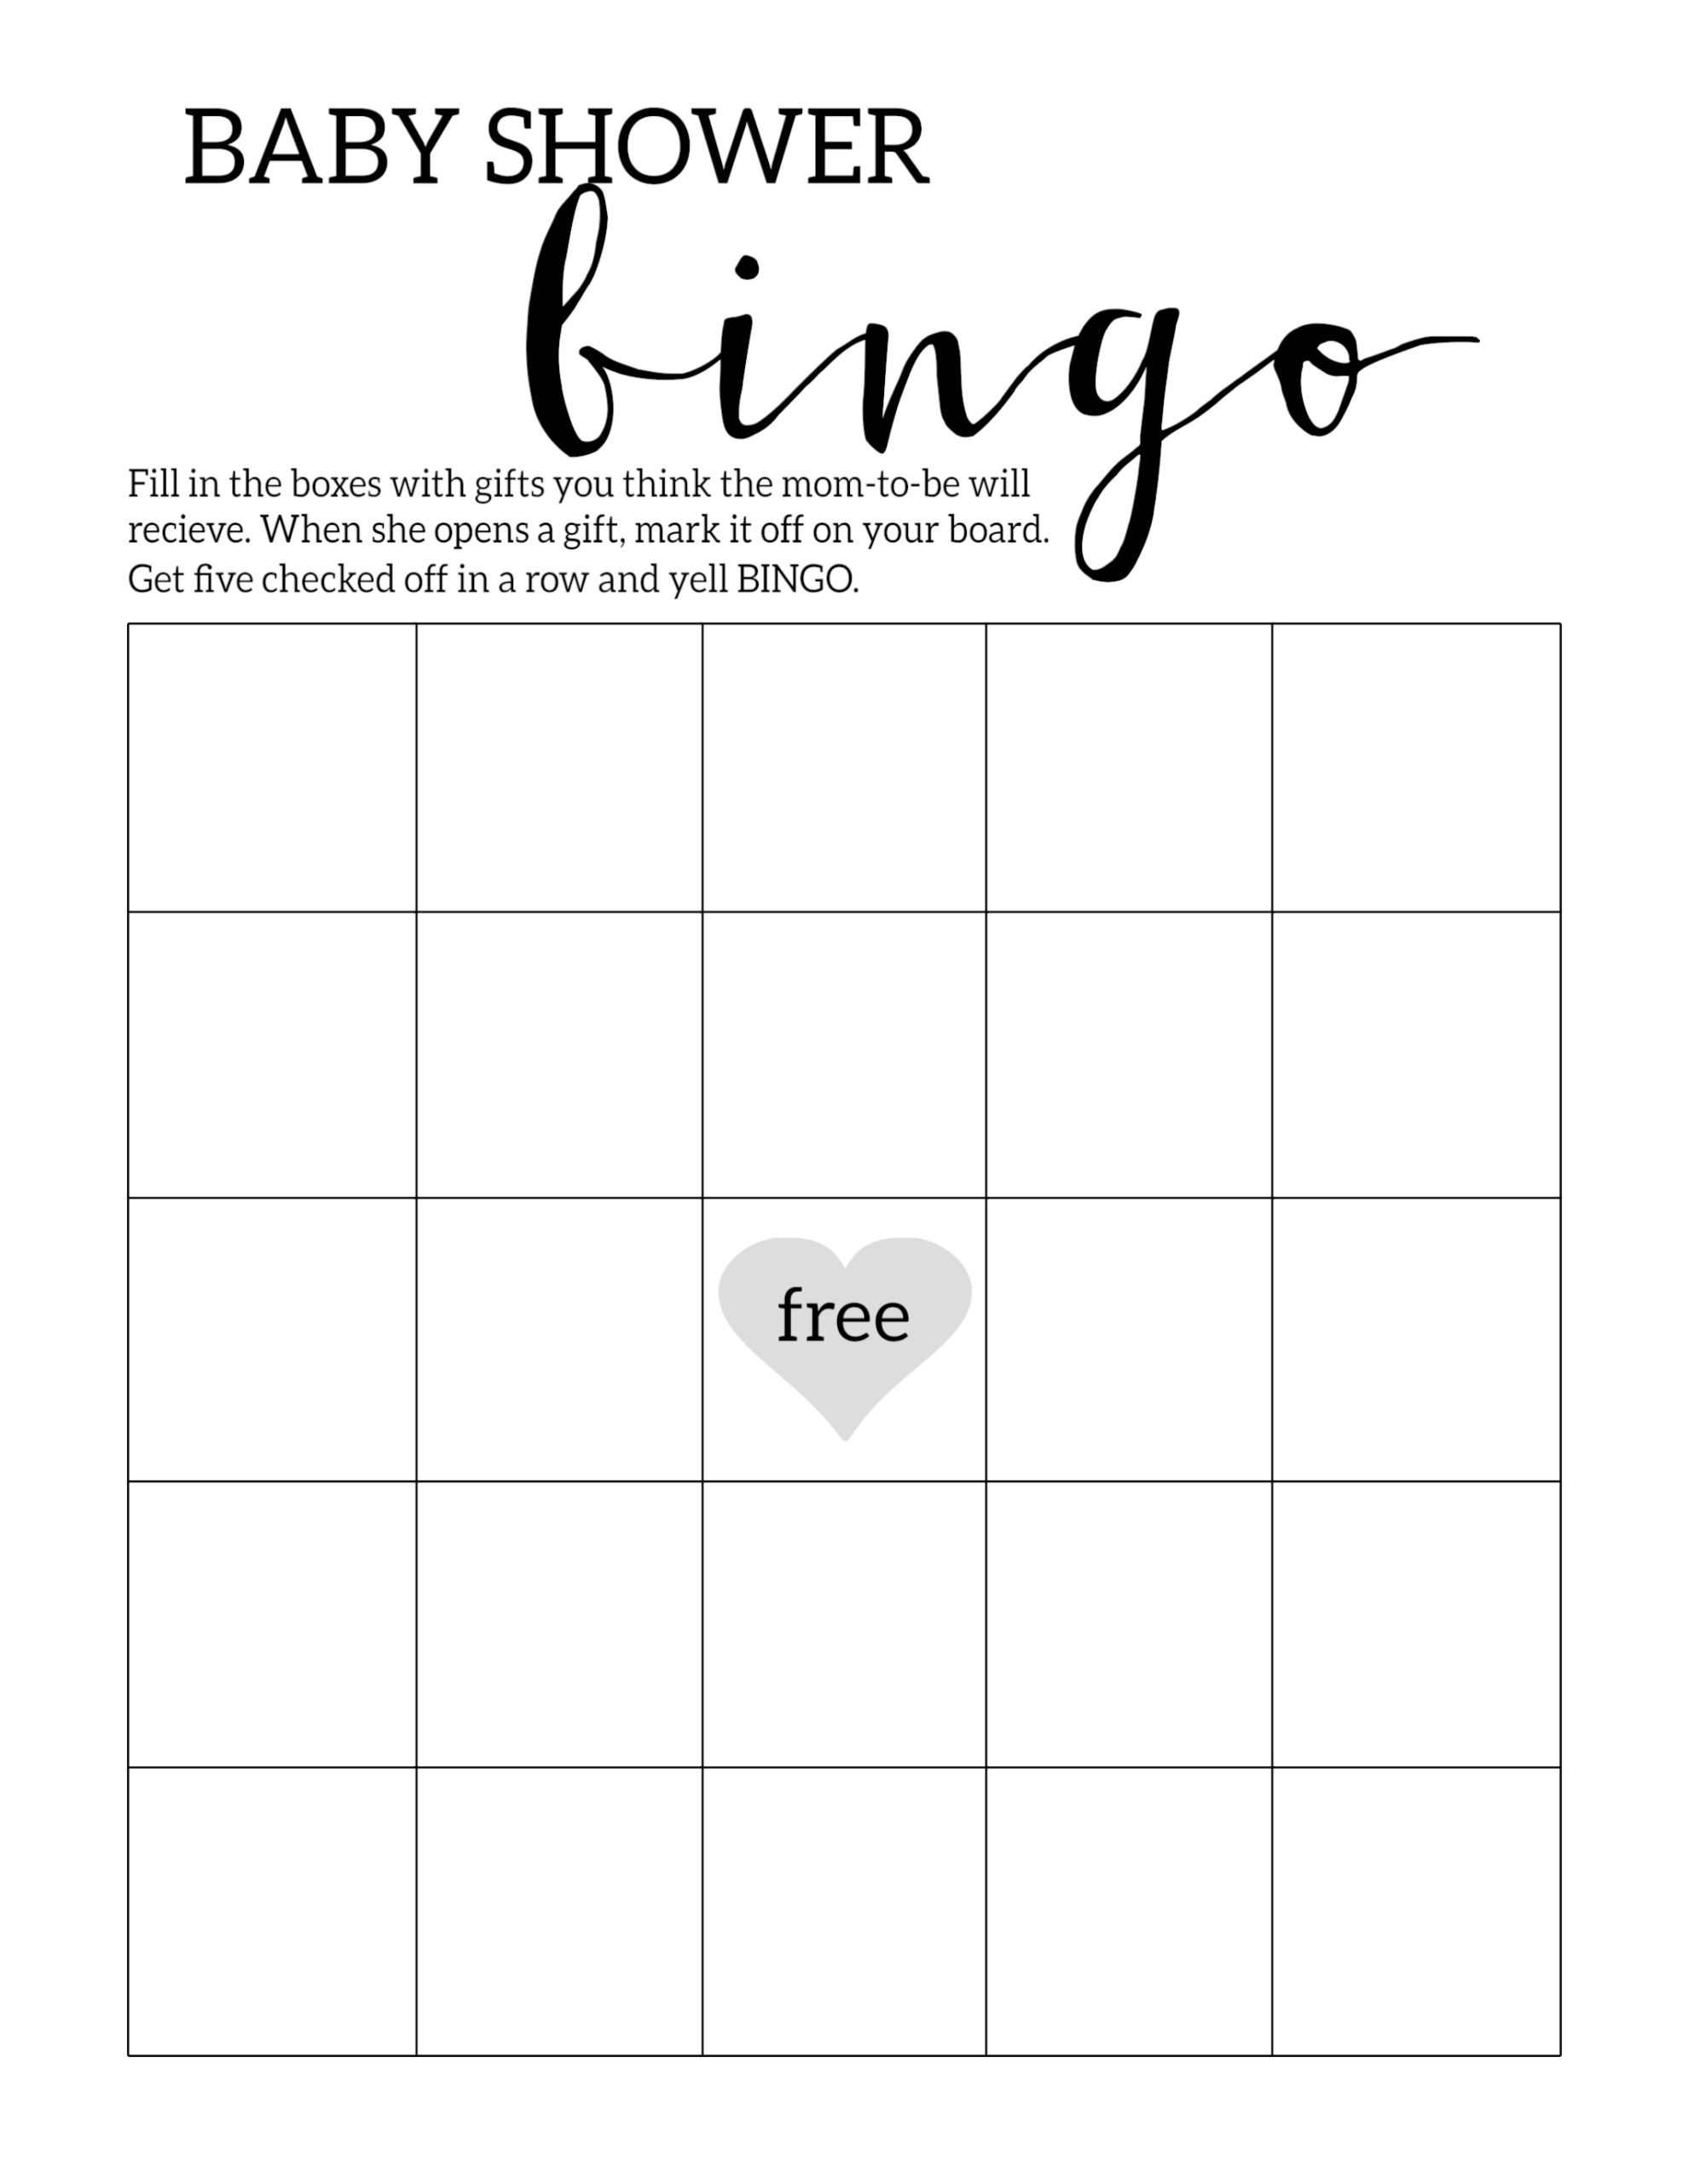 Baby Shower Bingo Printable Cards Template - Paper Trail Design - Baby Bingo Free Printable Template